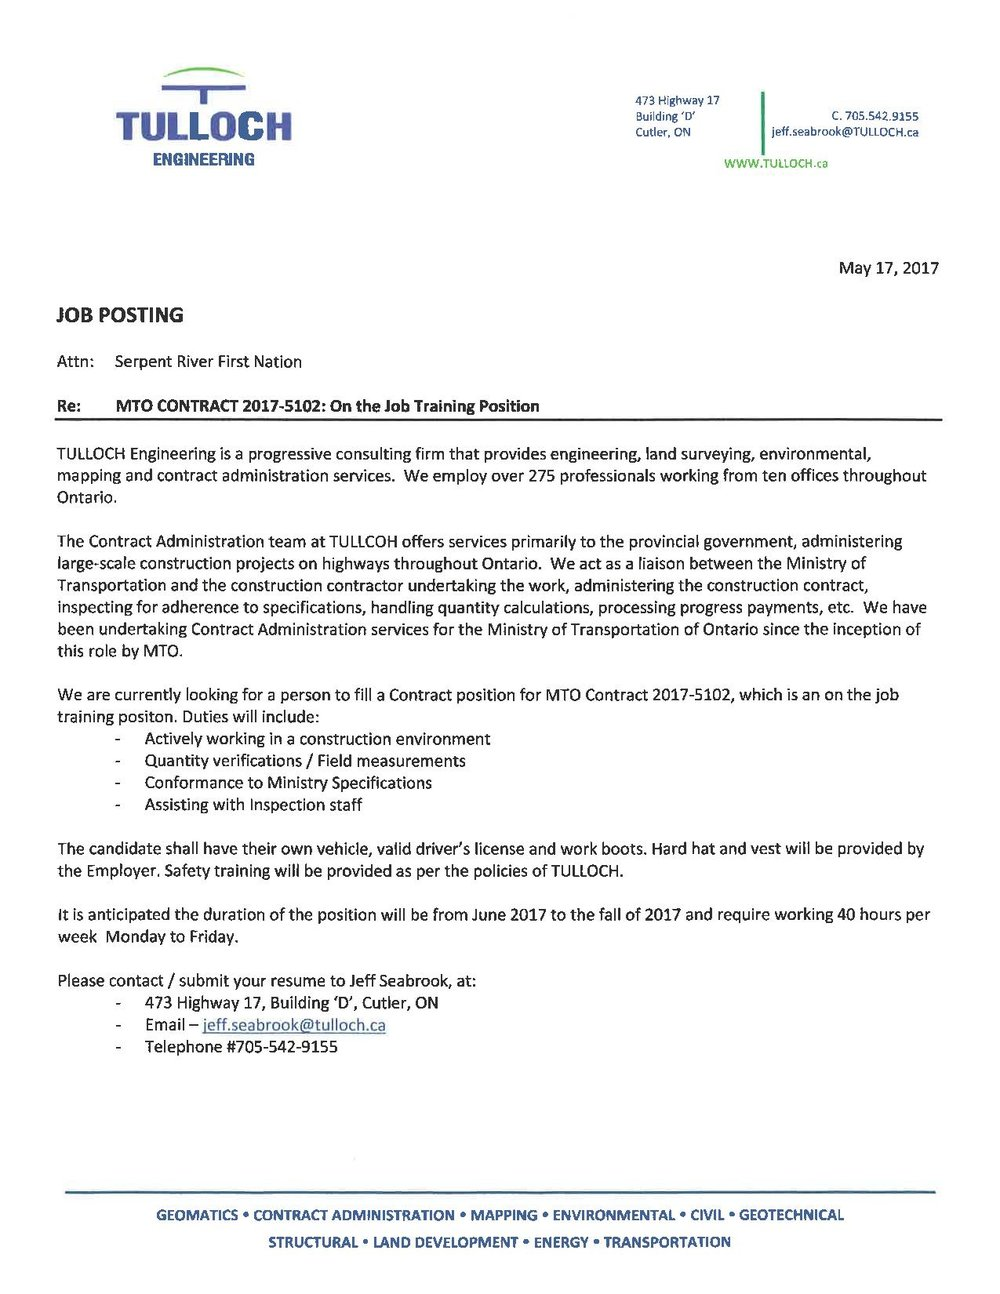 JOB POSTING MTO TRAINING